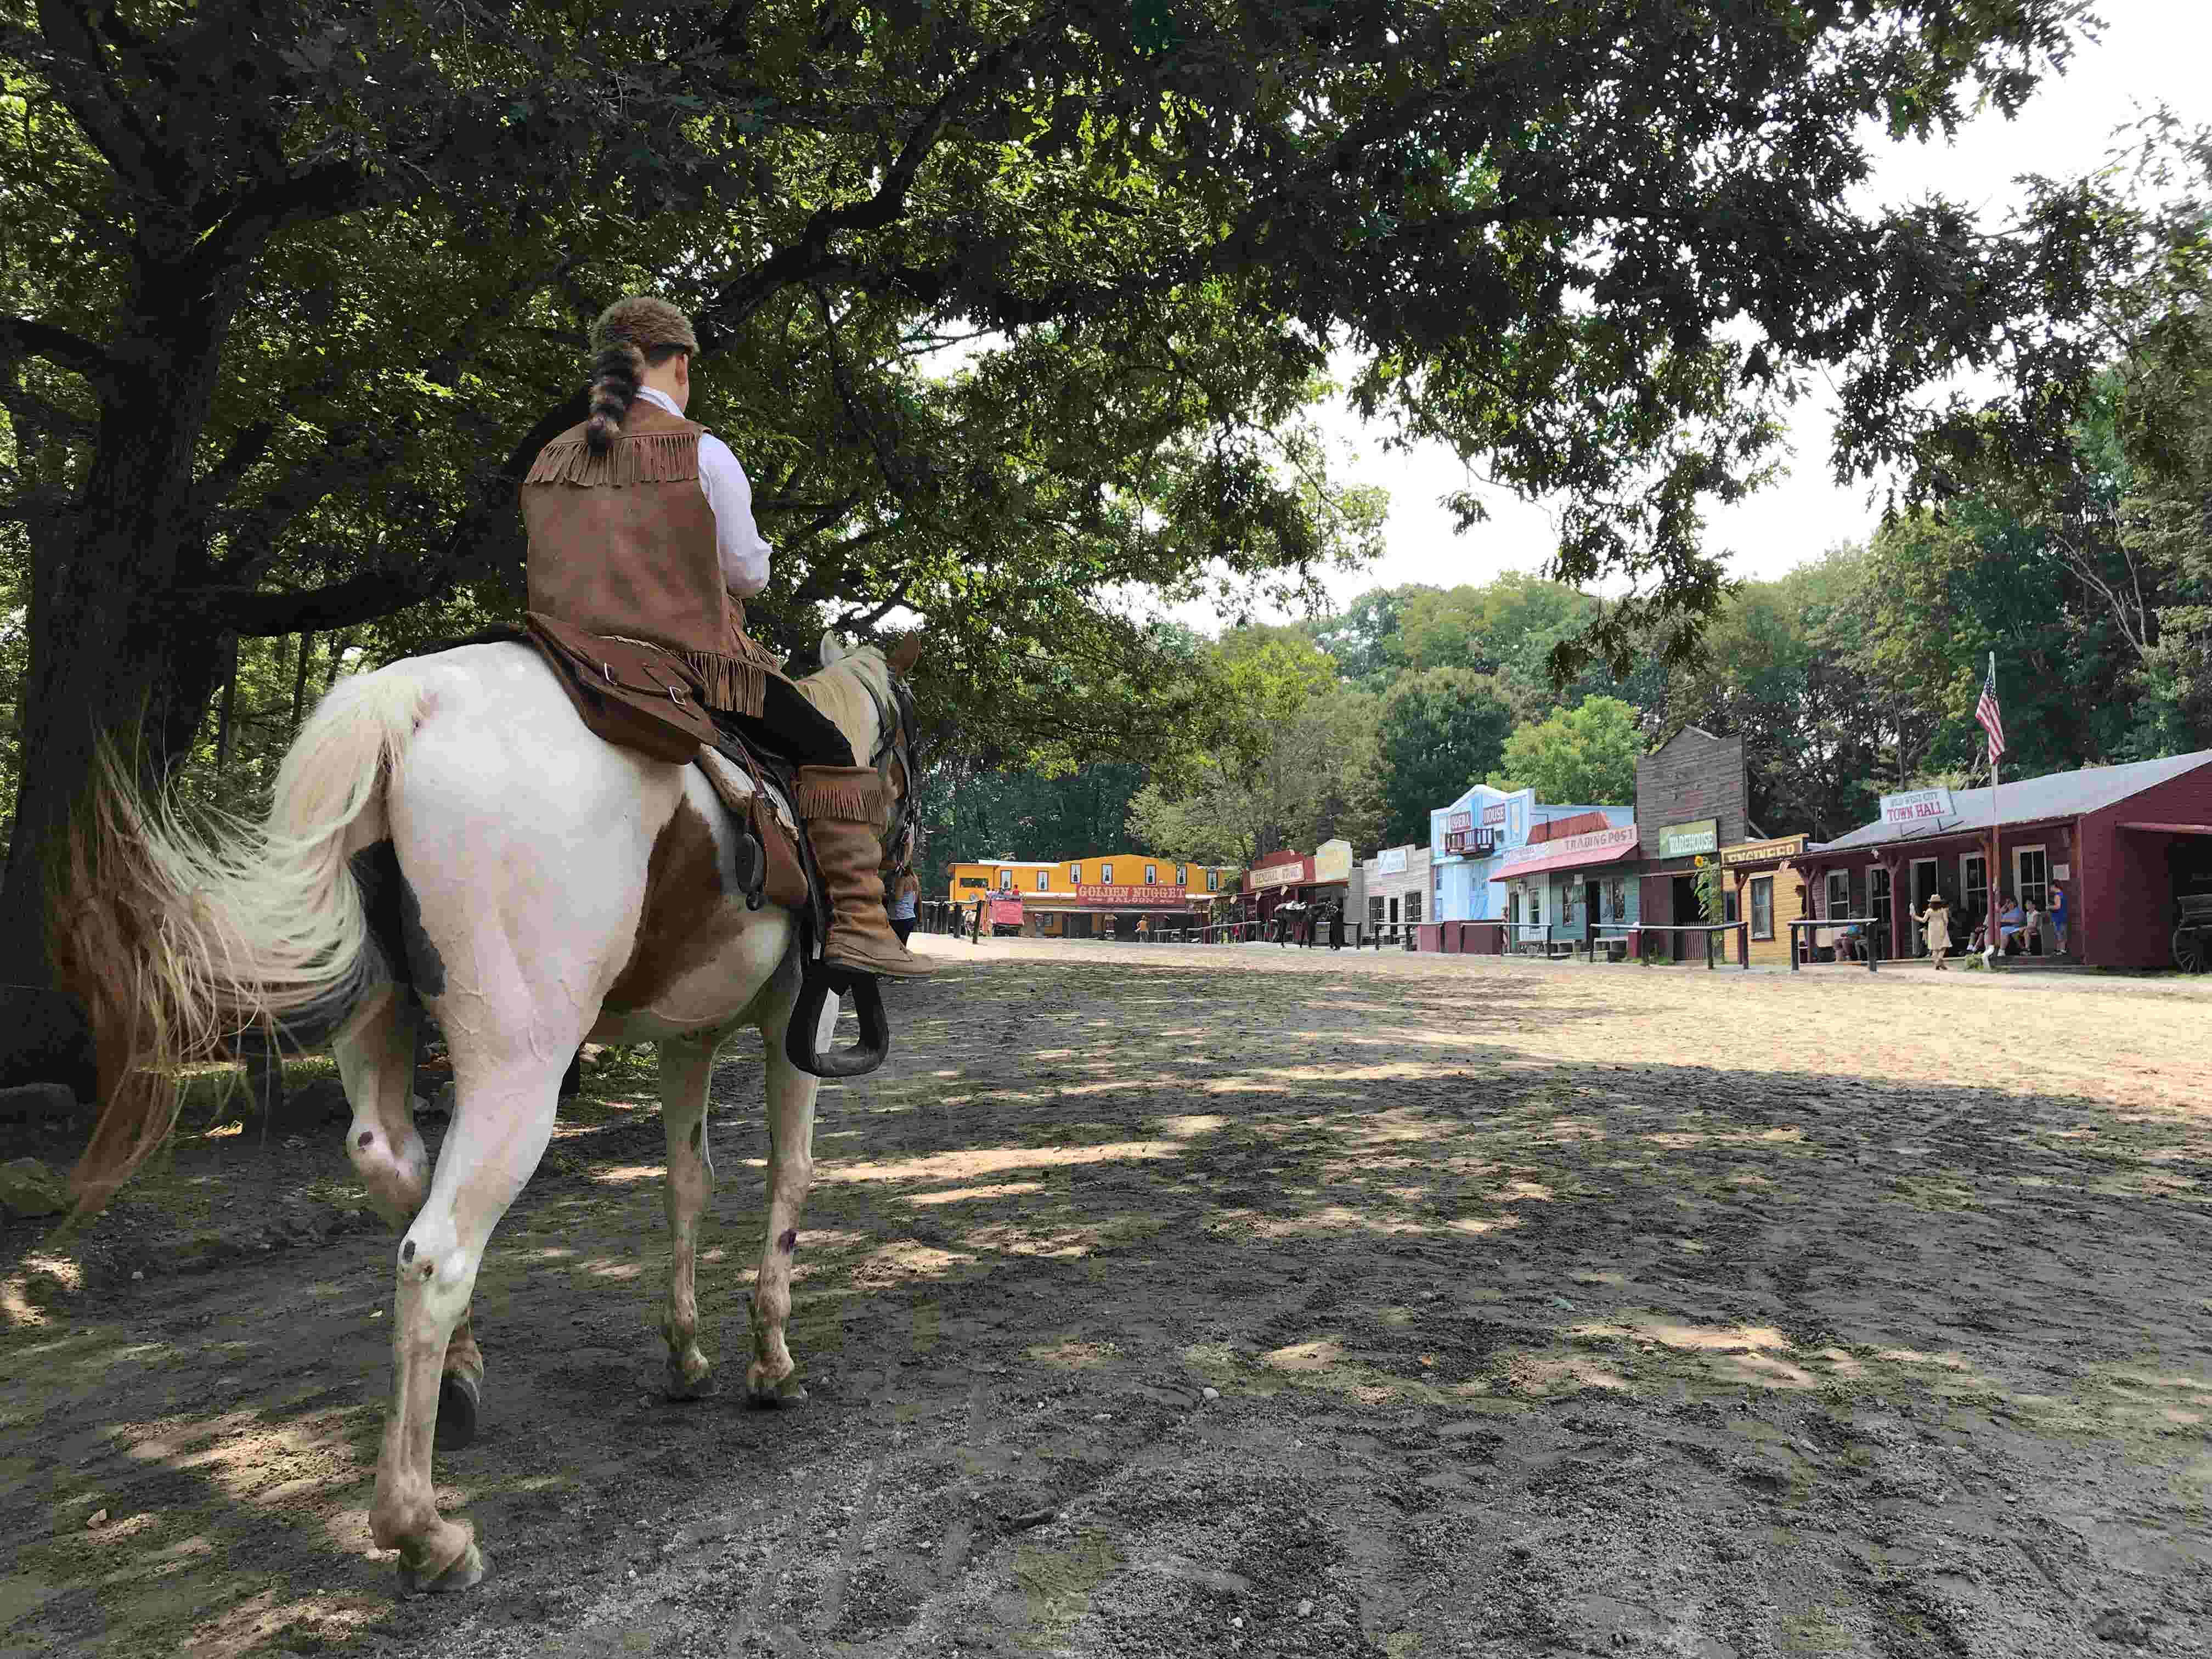 Video: A look at Wild West City, NJ's western-themed park